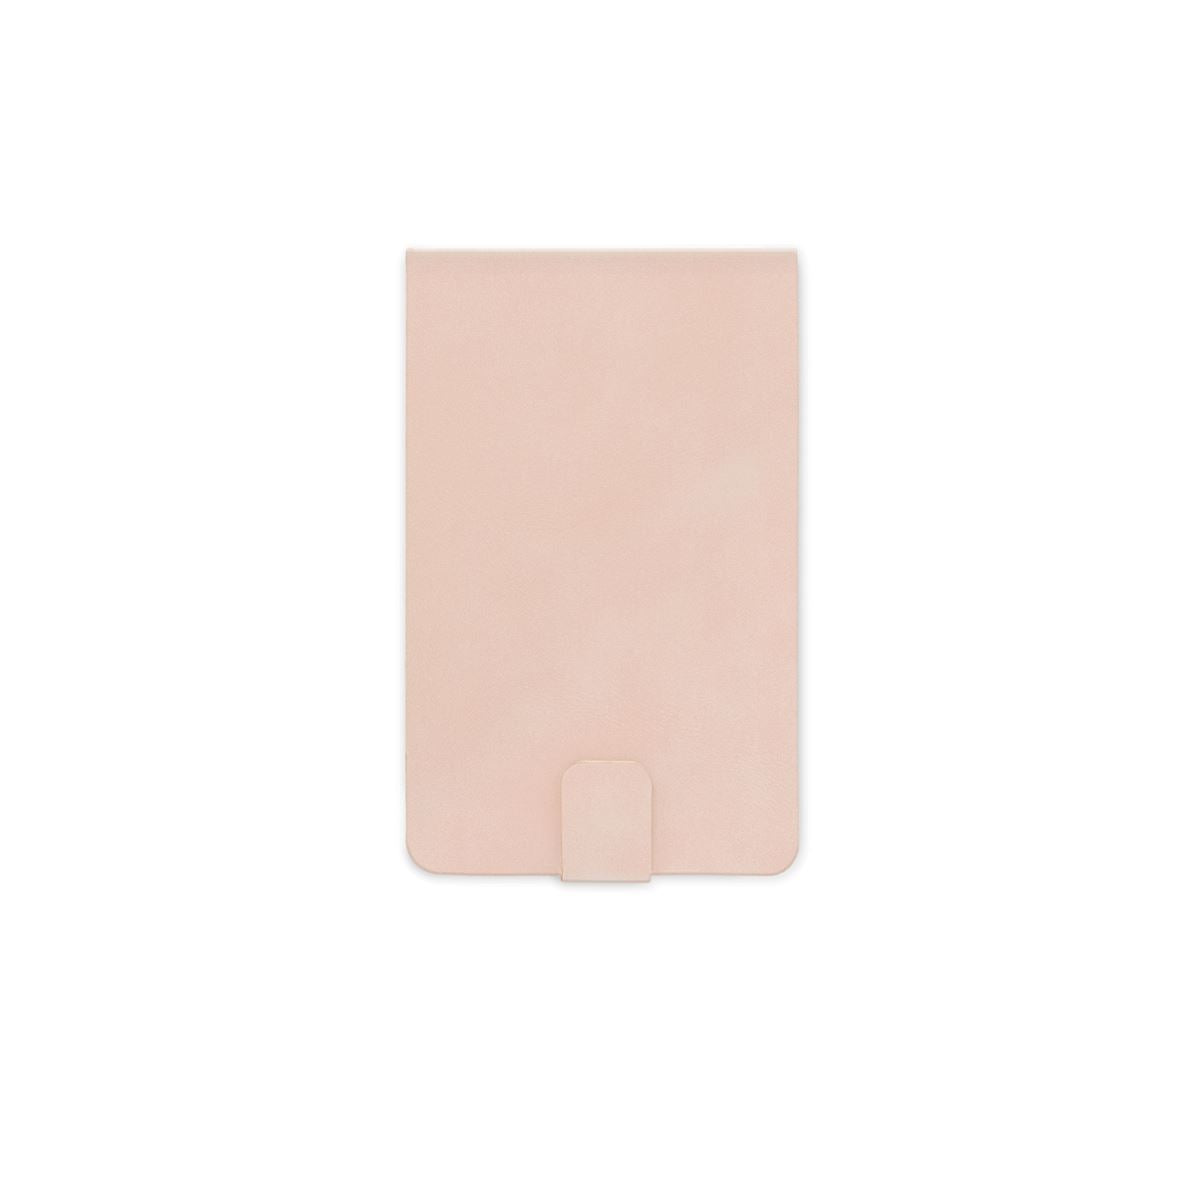 Vegan Suede Notepad - Dusty Blush